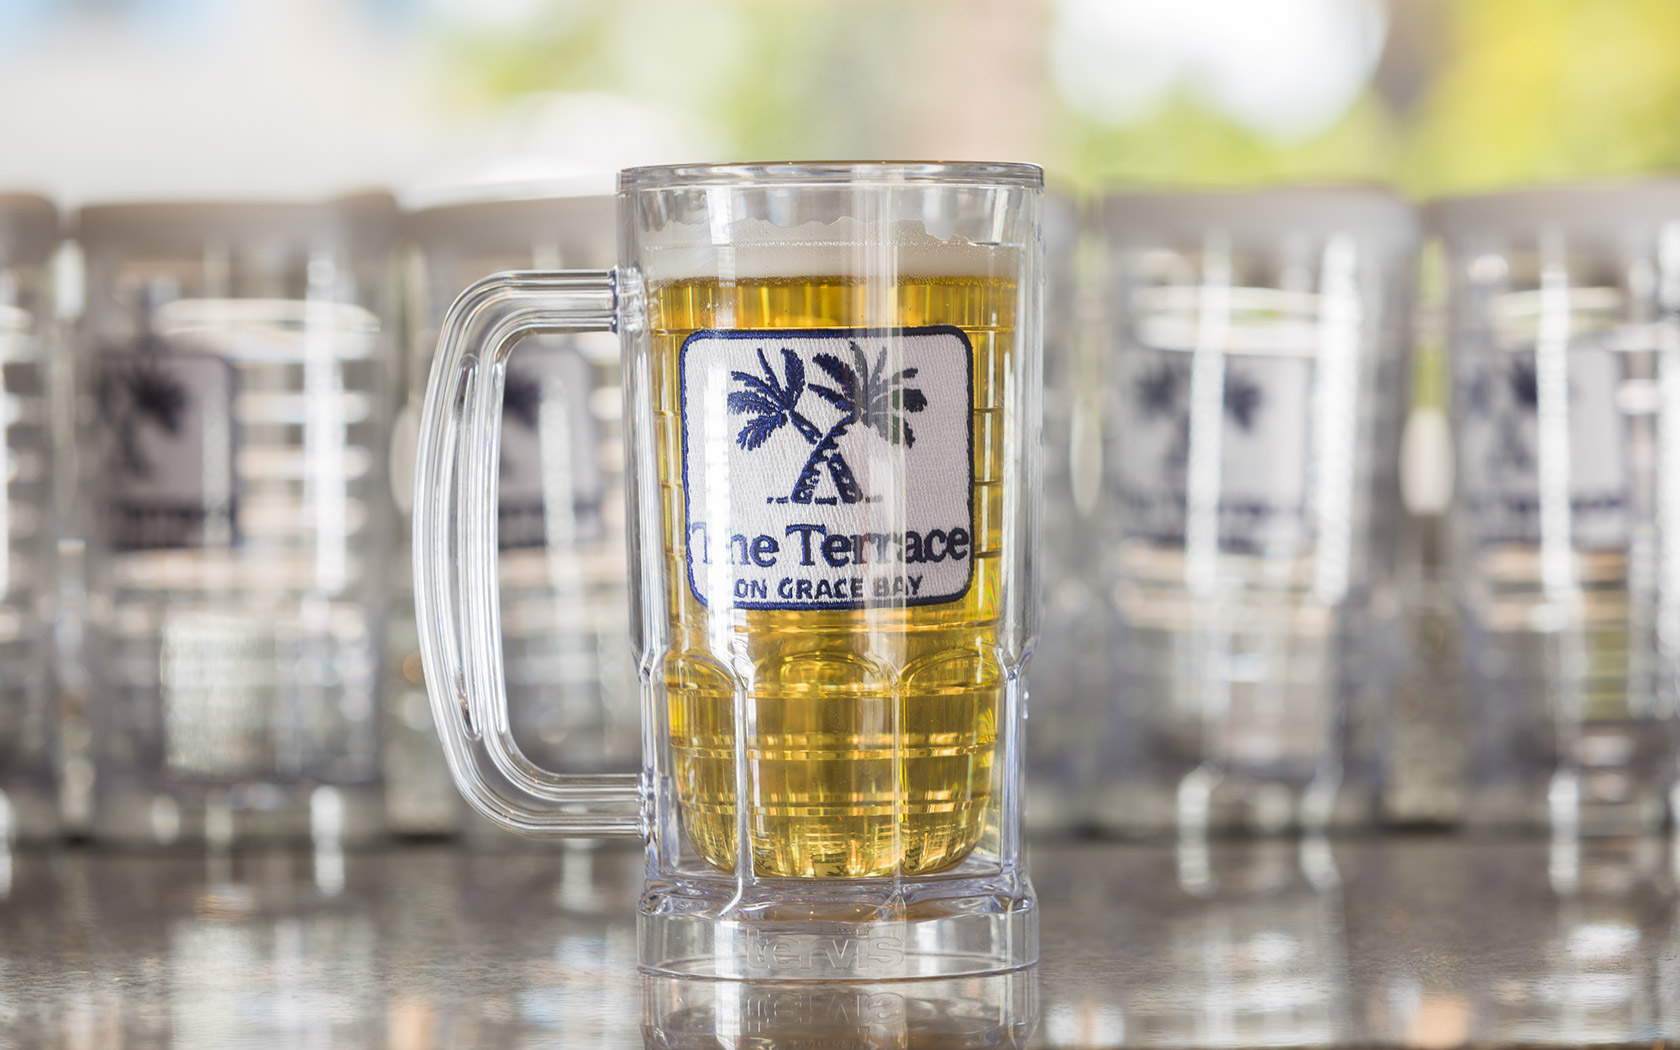 insulated tumbler filled with beer with the terrace on grace bay logo